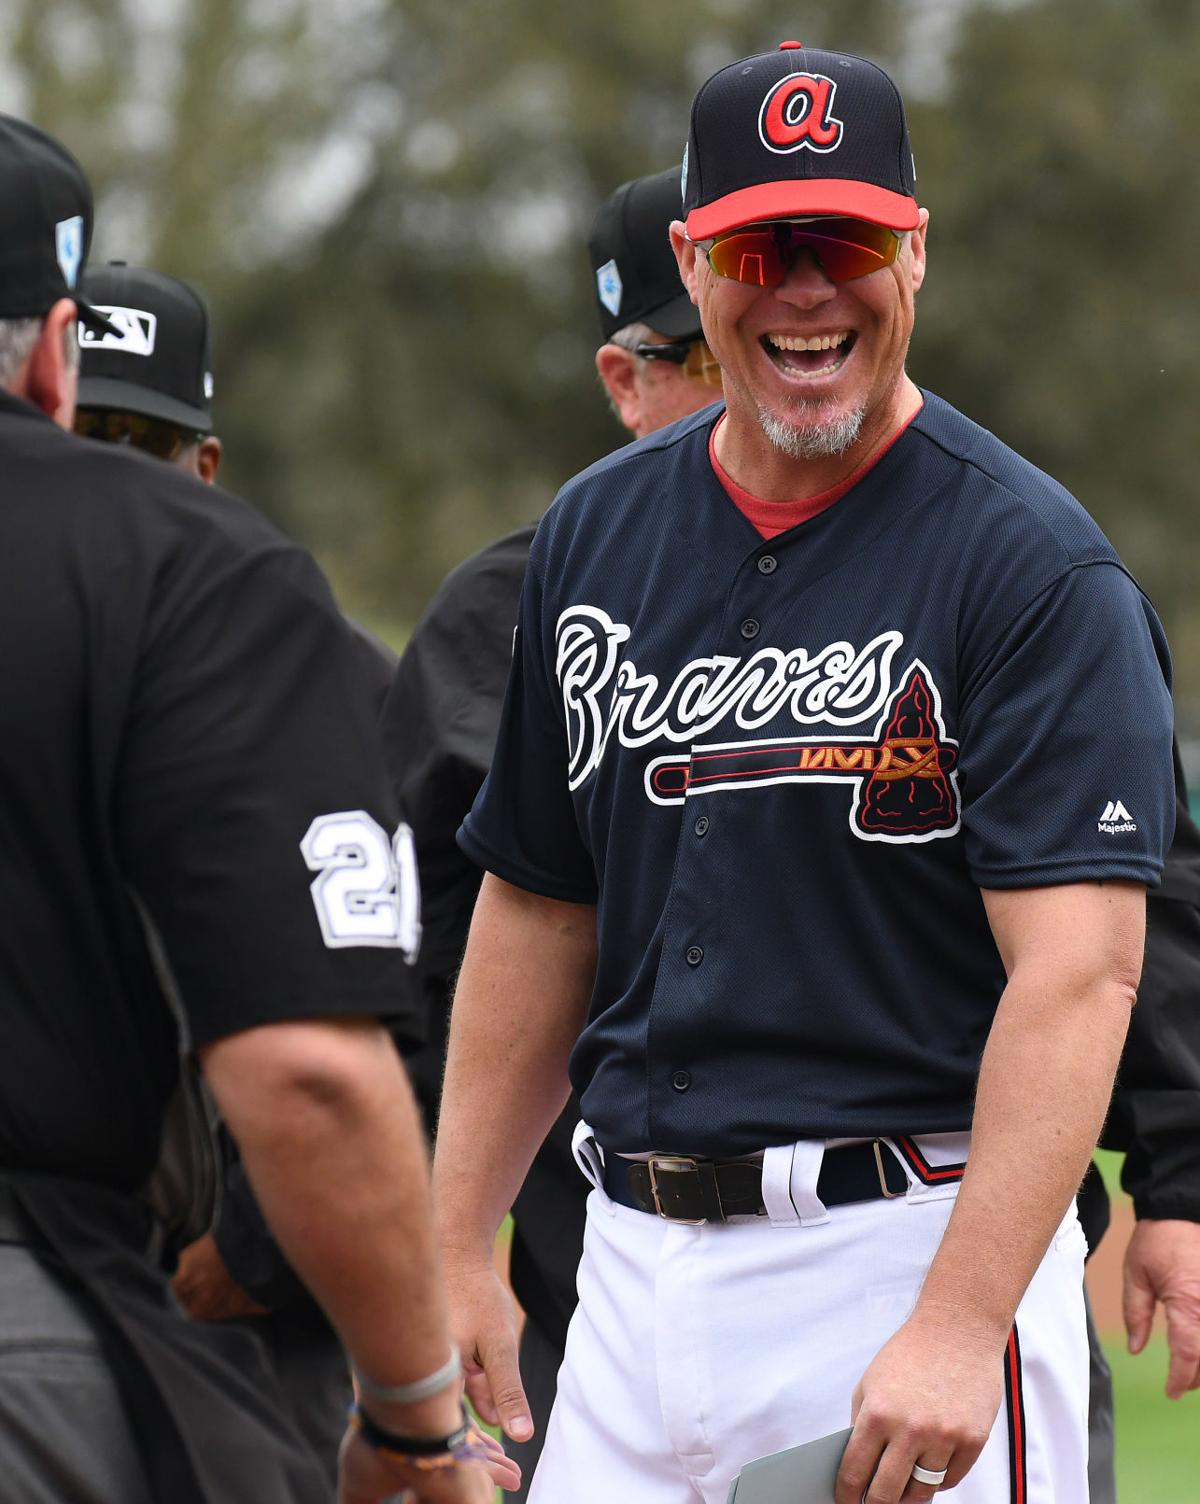 PHOTOS: Atlanta Braves in 2019 Spring Training | Curated